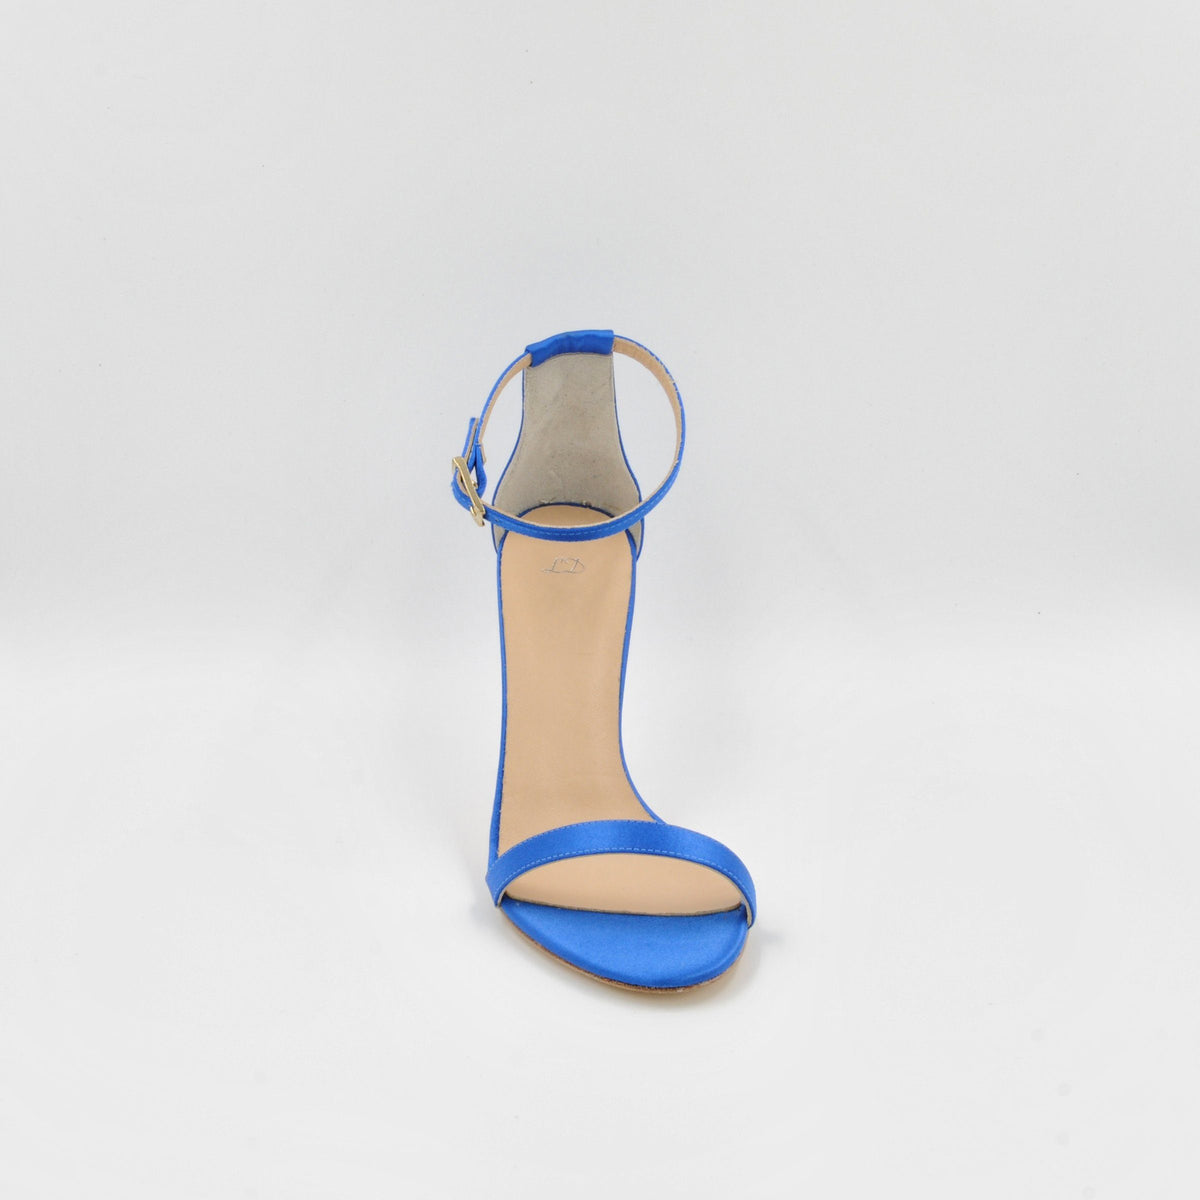 Lola Domecq Alejandra In Blue Handmade satin sandals